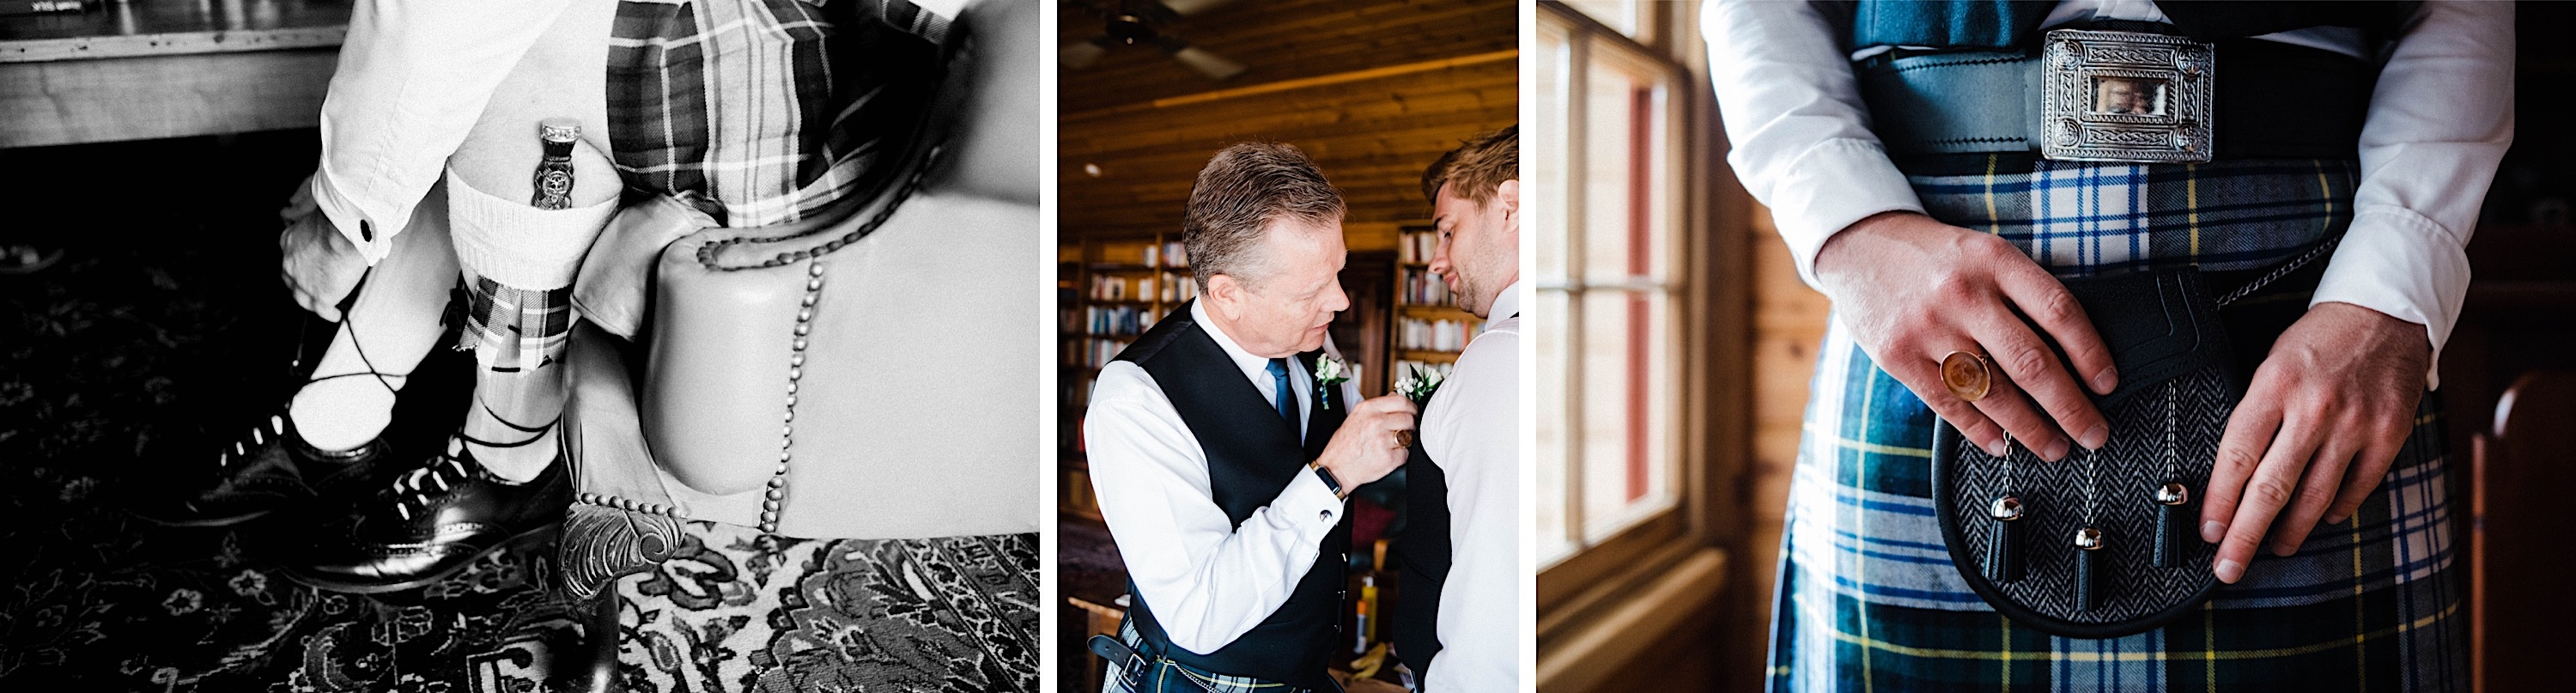 Documentary wedding photography of the groom getting ready. In the first black & white photo, the groom ties his laces, in the second his Dad puts on his buttonhole, and in the third he holds his sporran in front of his kilt.